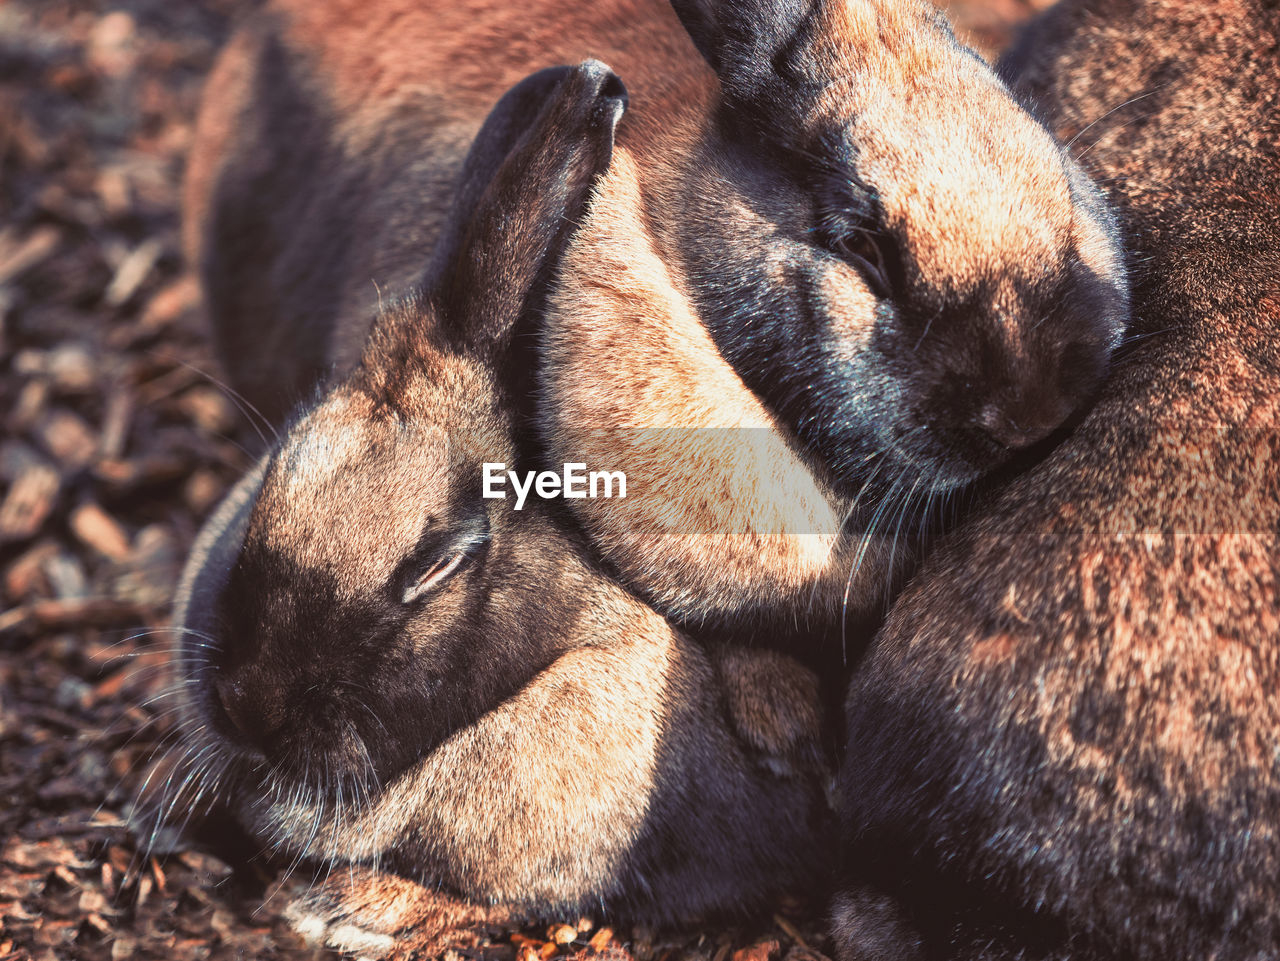 mammal, animal themes, animal, one animal, vertebrate, relaxation, close-up, no people, pets, domestic animals, domestic, sleeping, canine, dog, eyes closed, animal body part, resting, animal head, day, land, napping